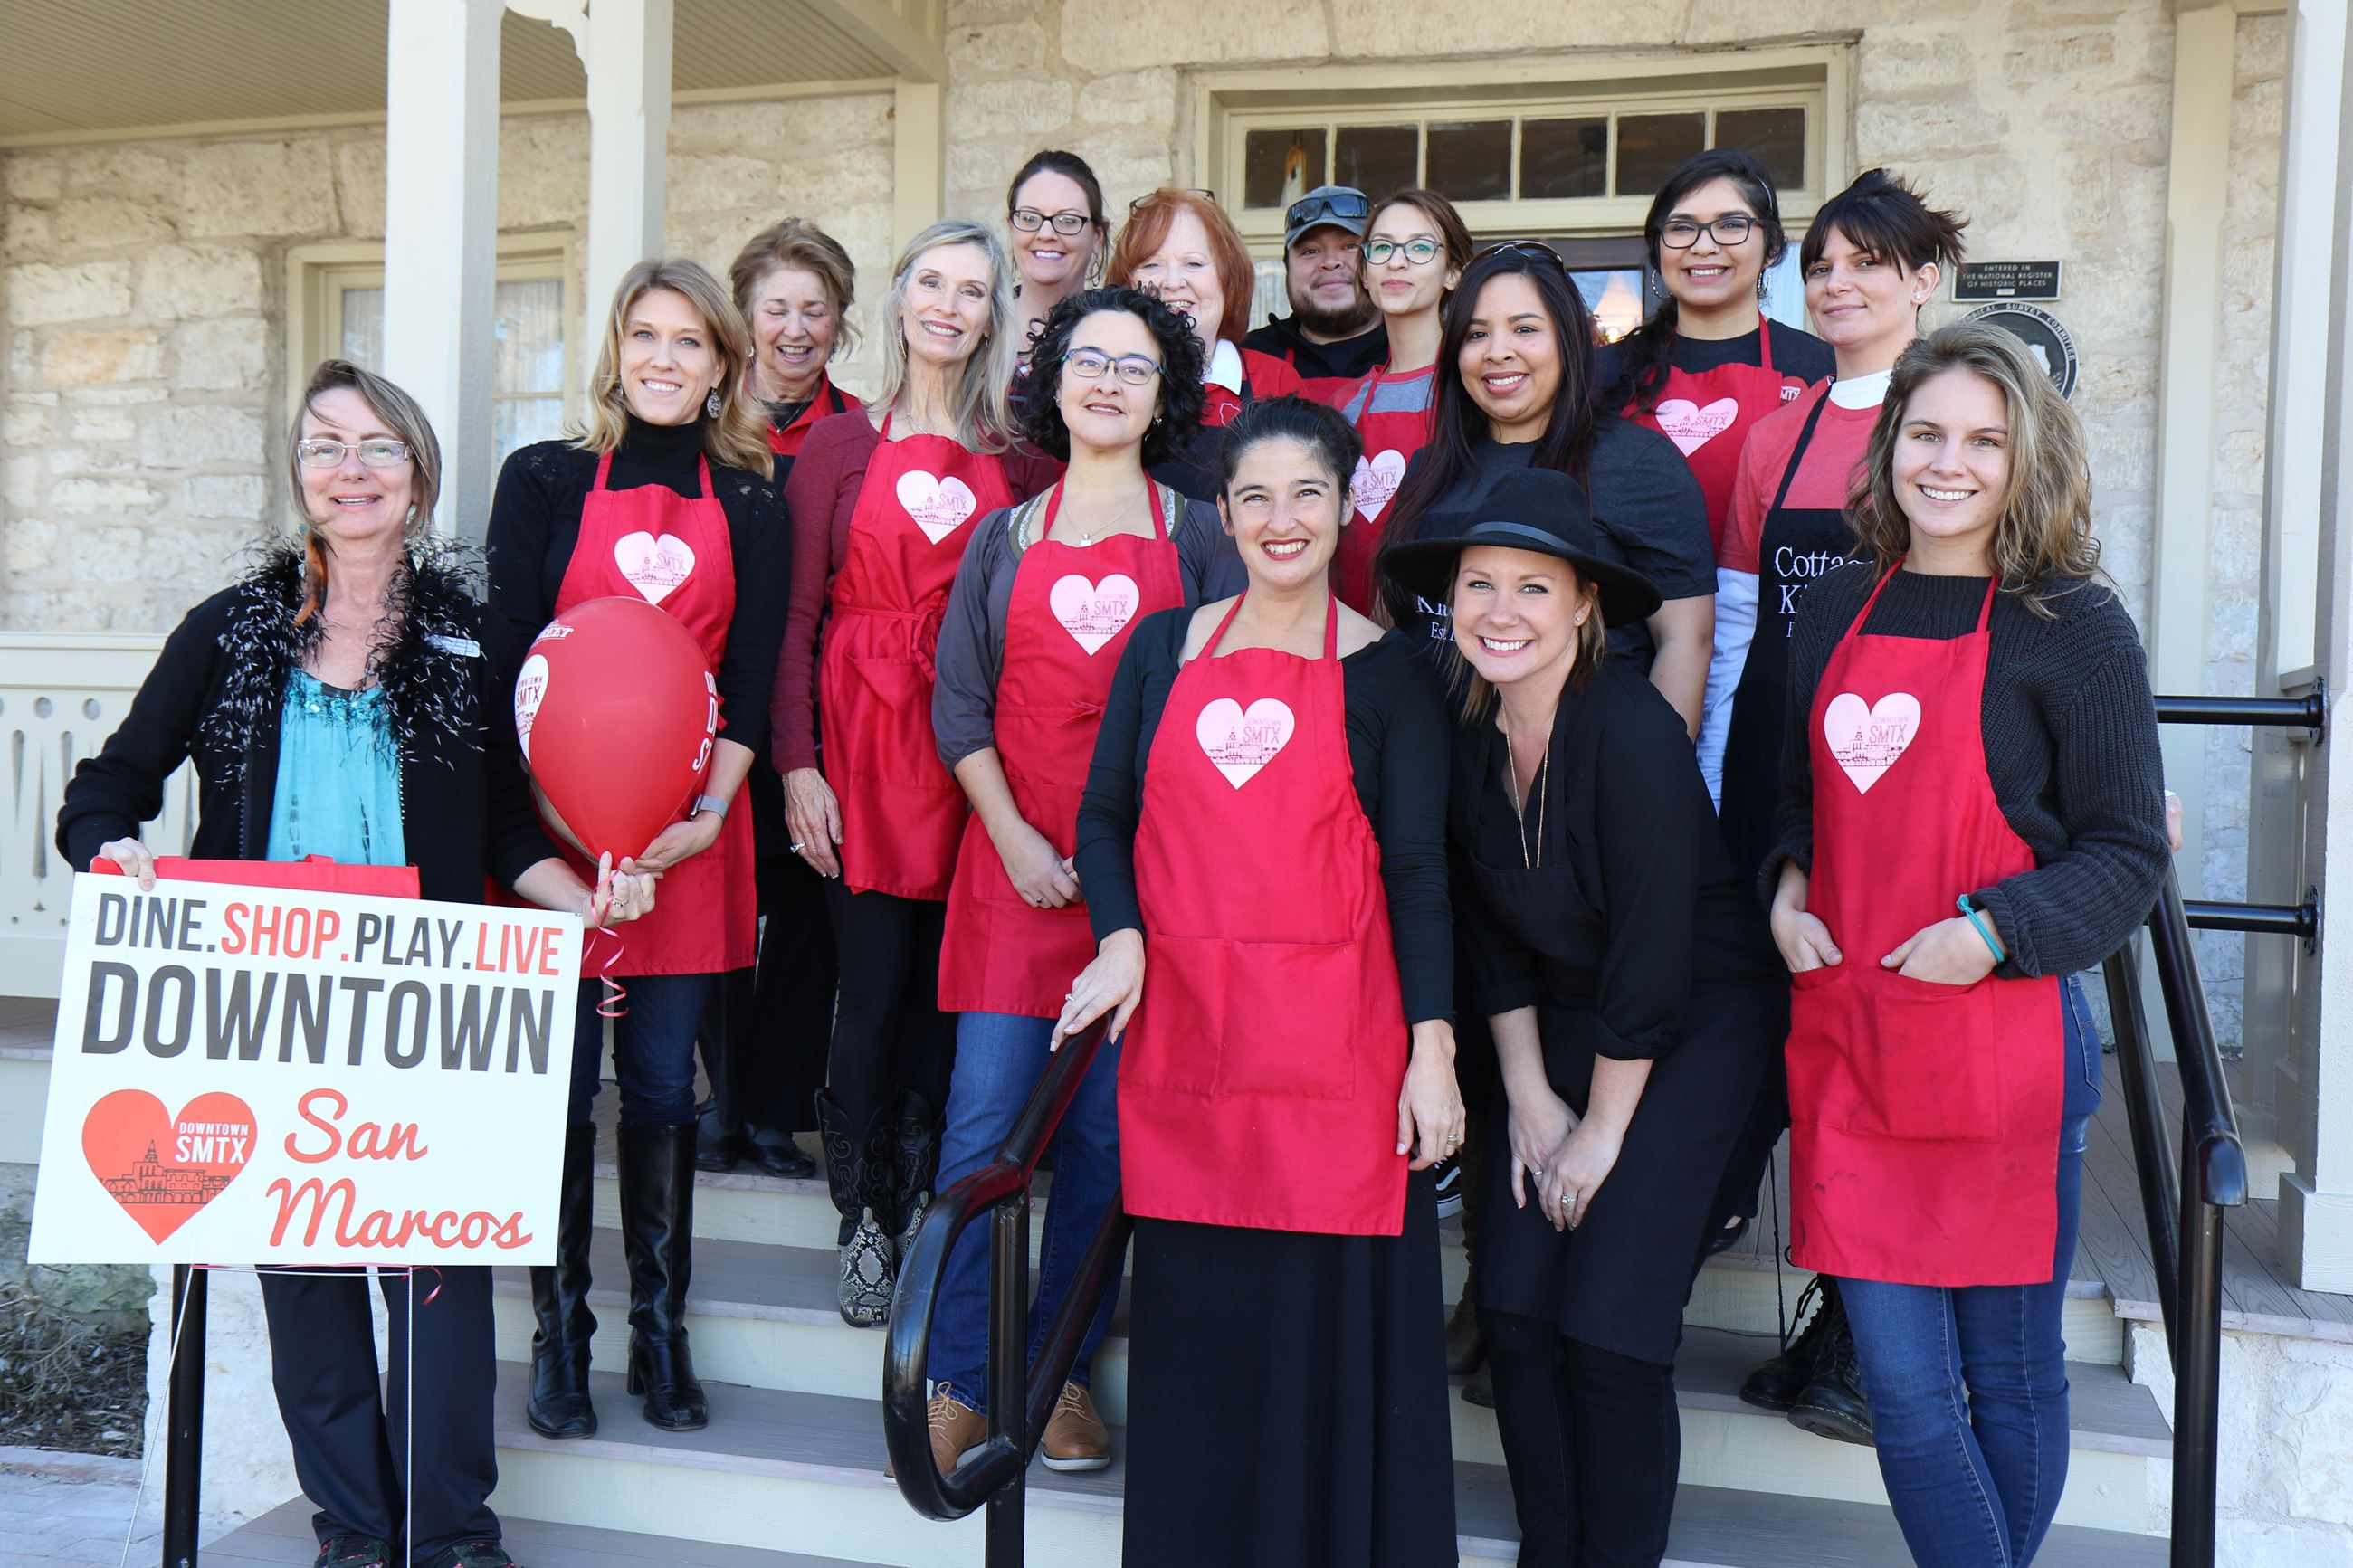 A dozen volunteers in red Main Street aprons standing on the steps of an old house